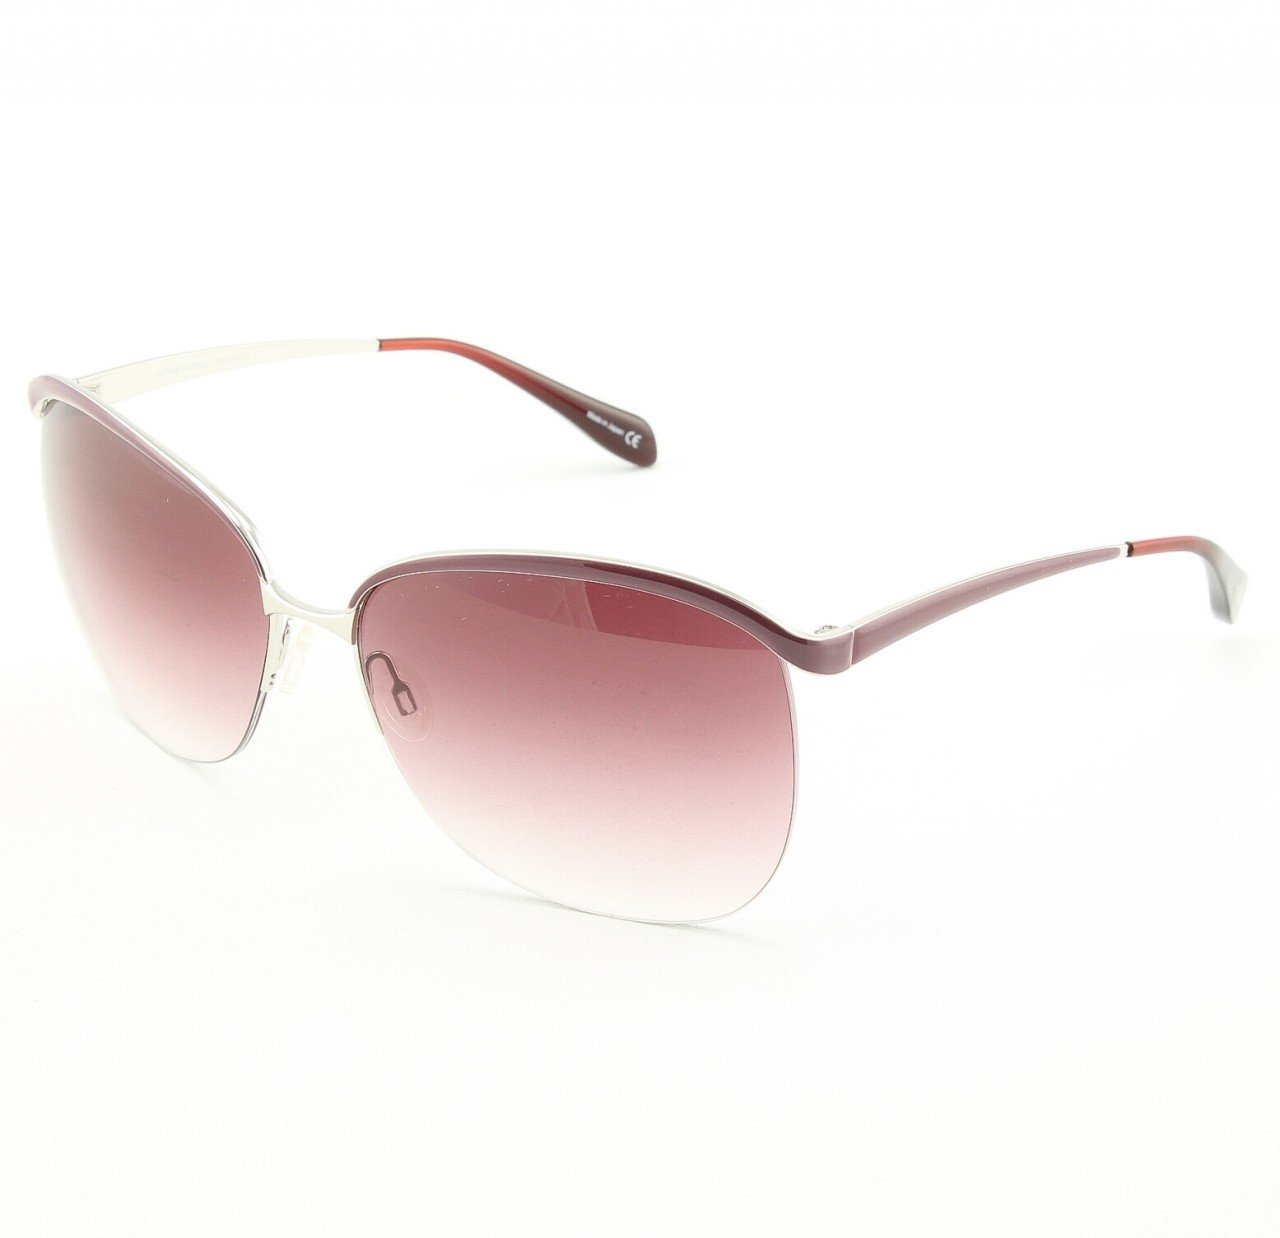 Oliver Peoples Lamour 1092S 5027/8H Sunglasses Col. Burgundy with Burgundy Gradient Lenses